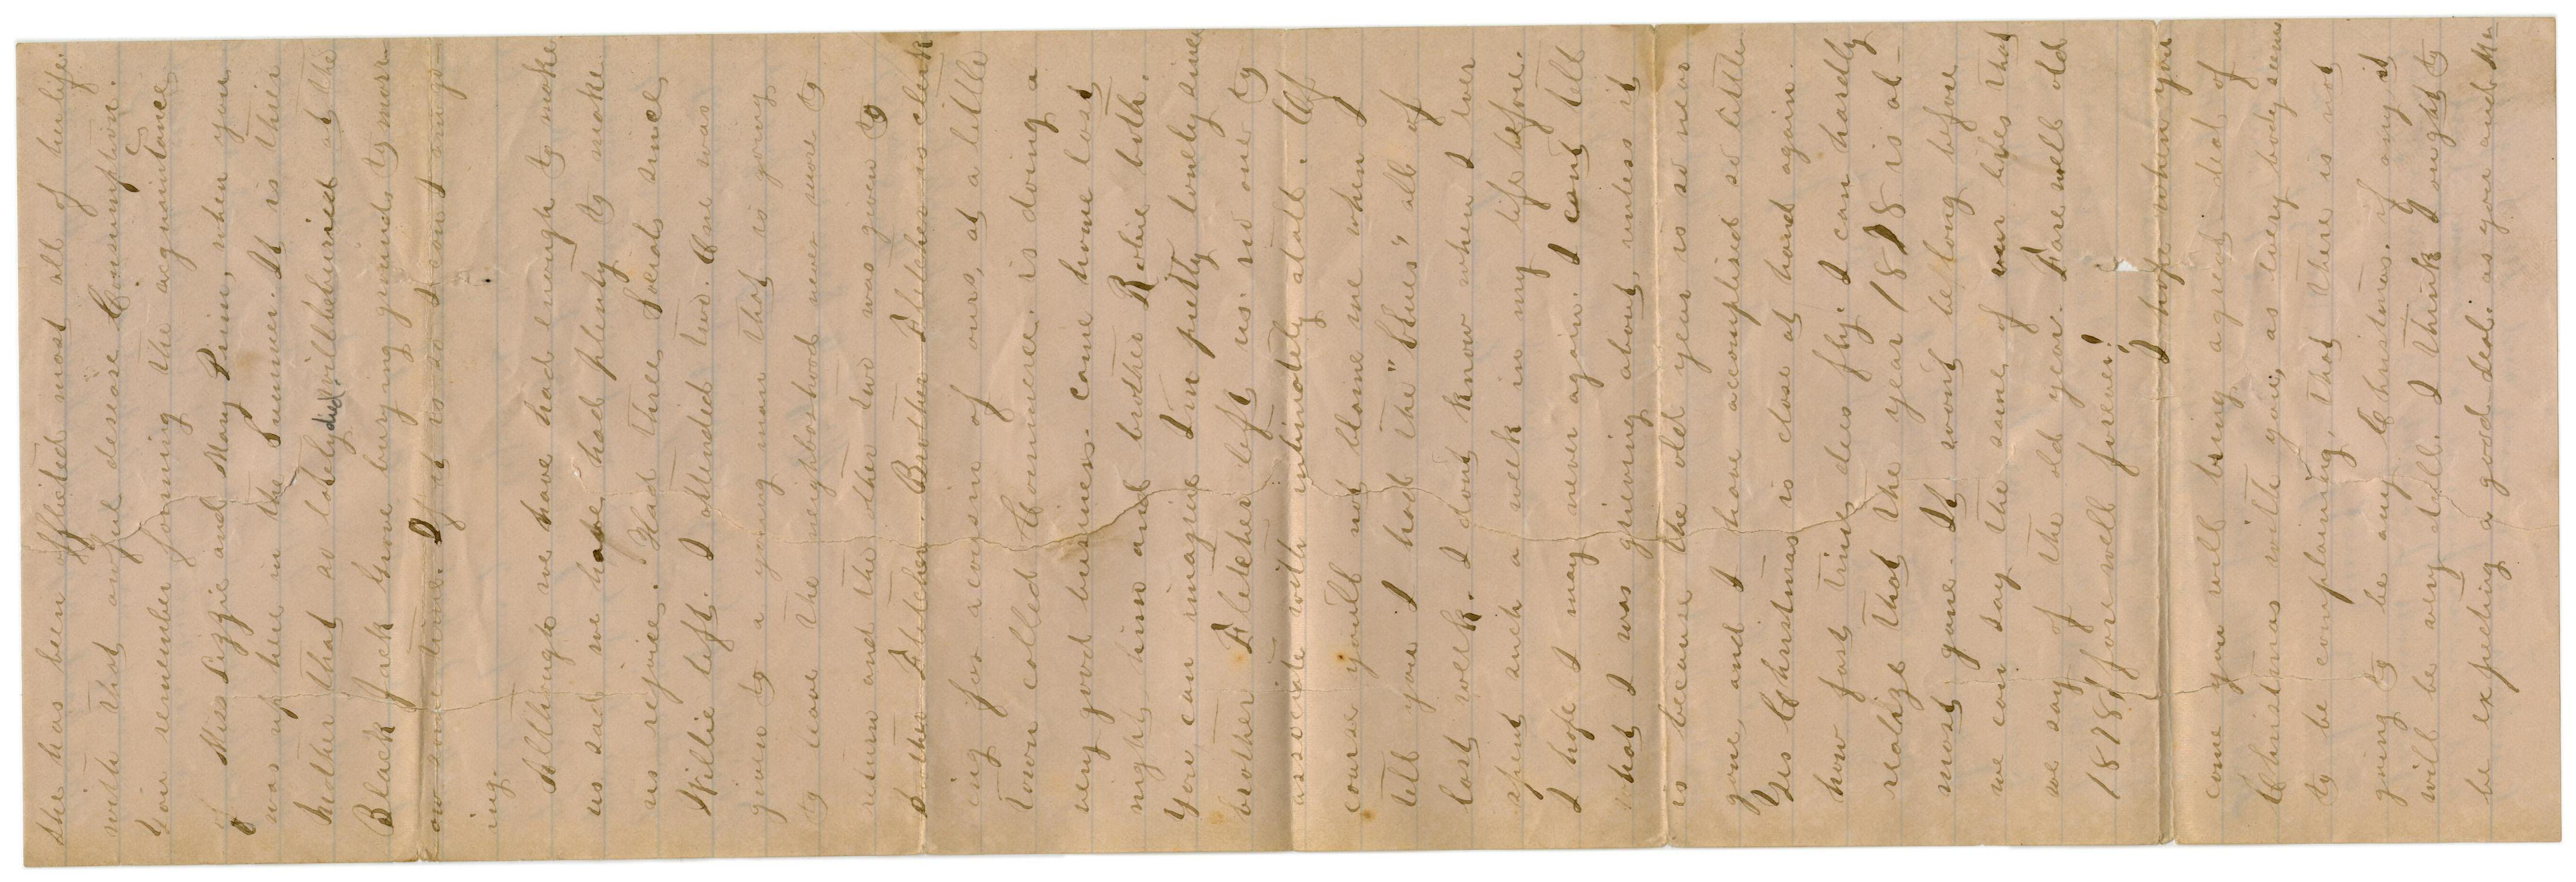 [Letter from Emma Davis to John C. Brewer, December 8, 1878]                                                                                                      [Sequence #]: 2 of 3